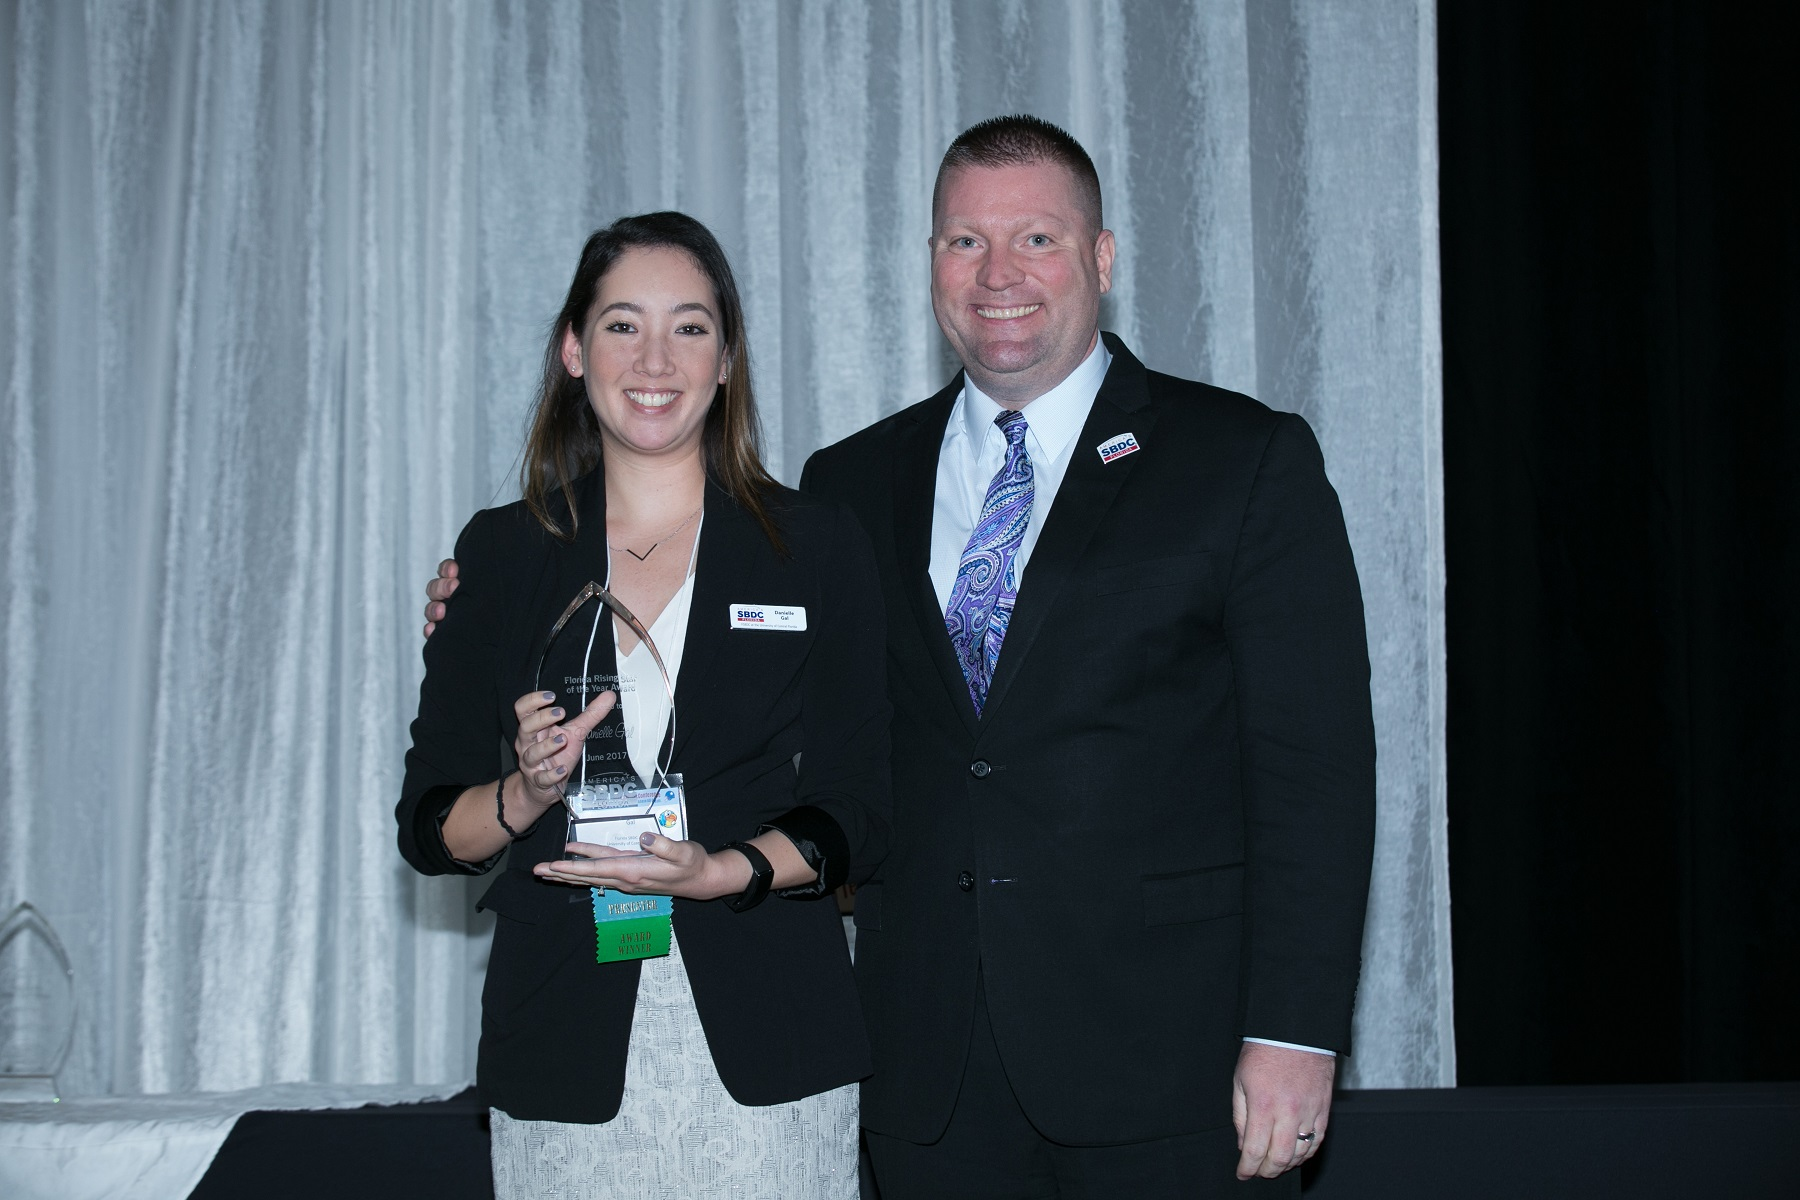 L-R: Danielle Gal, the 2017 Florida Rising Star, and Michael Myhre